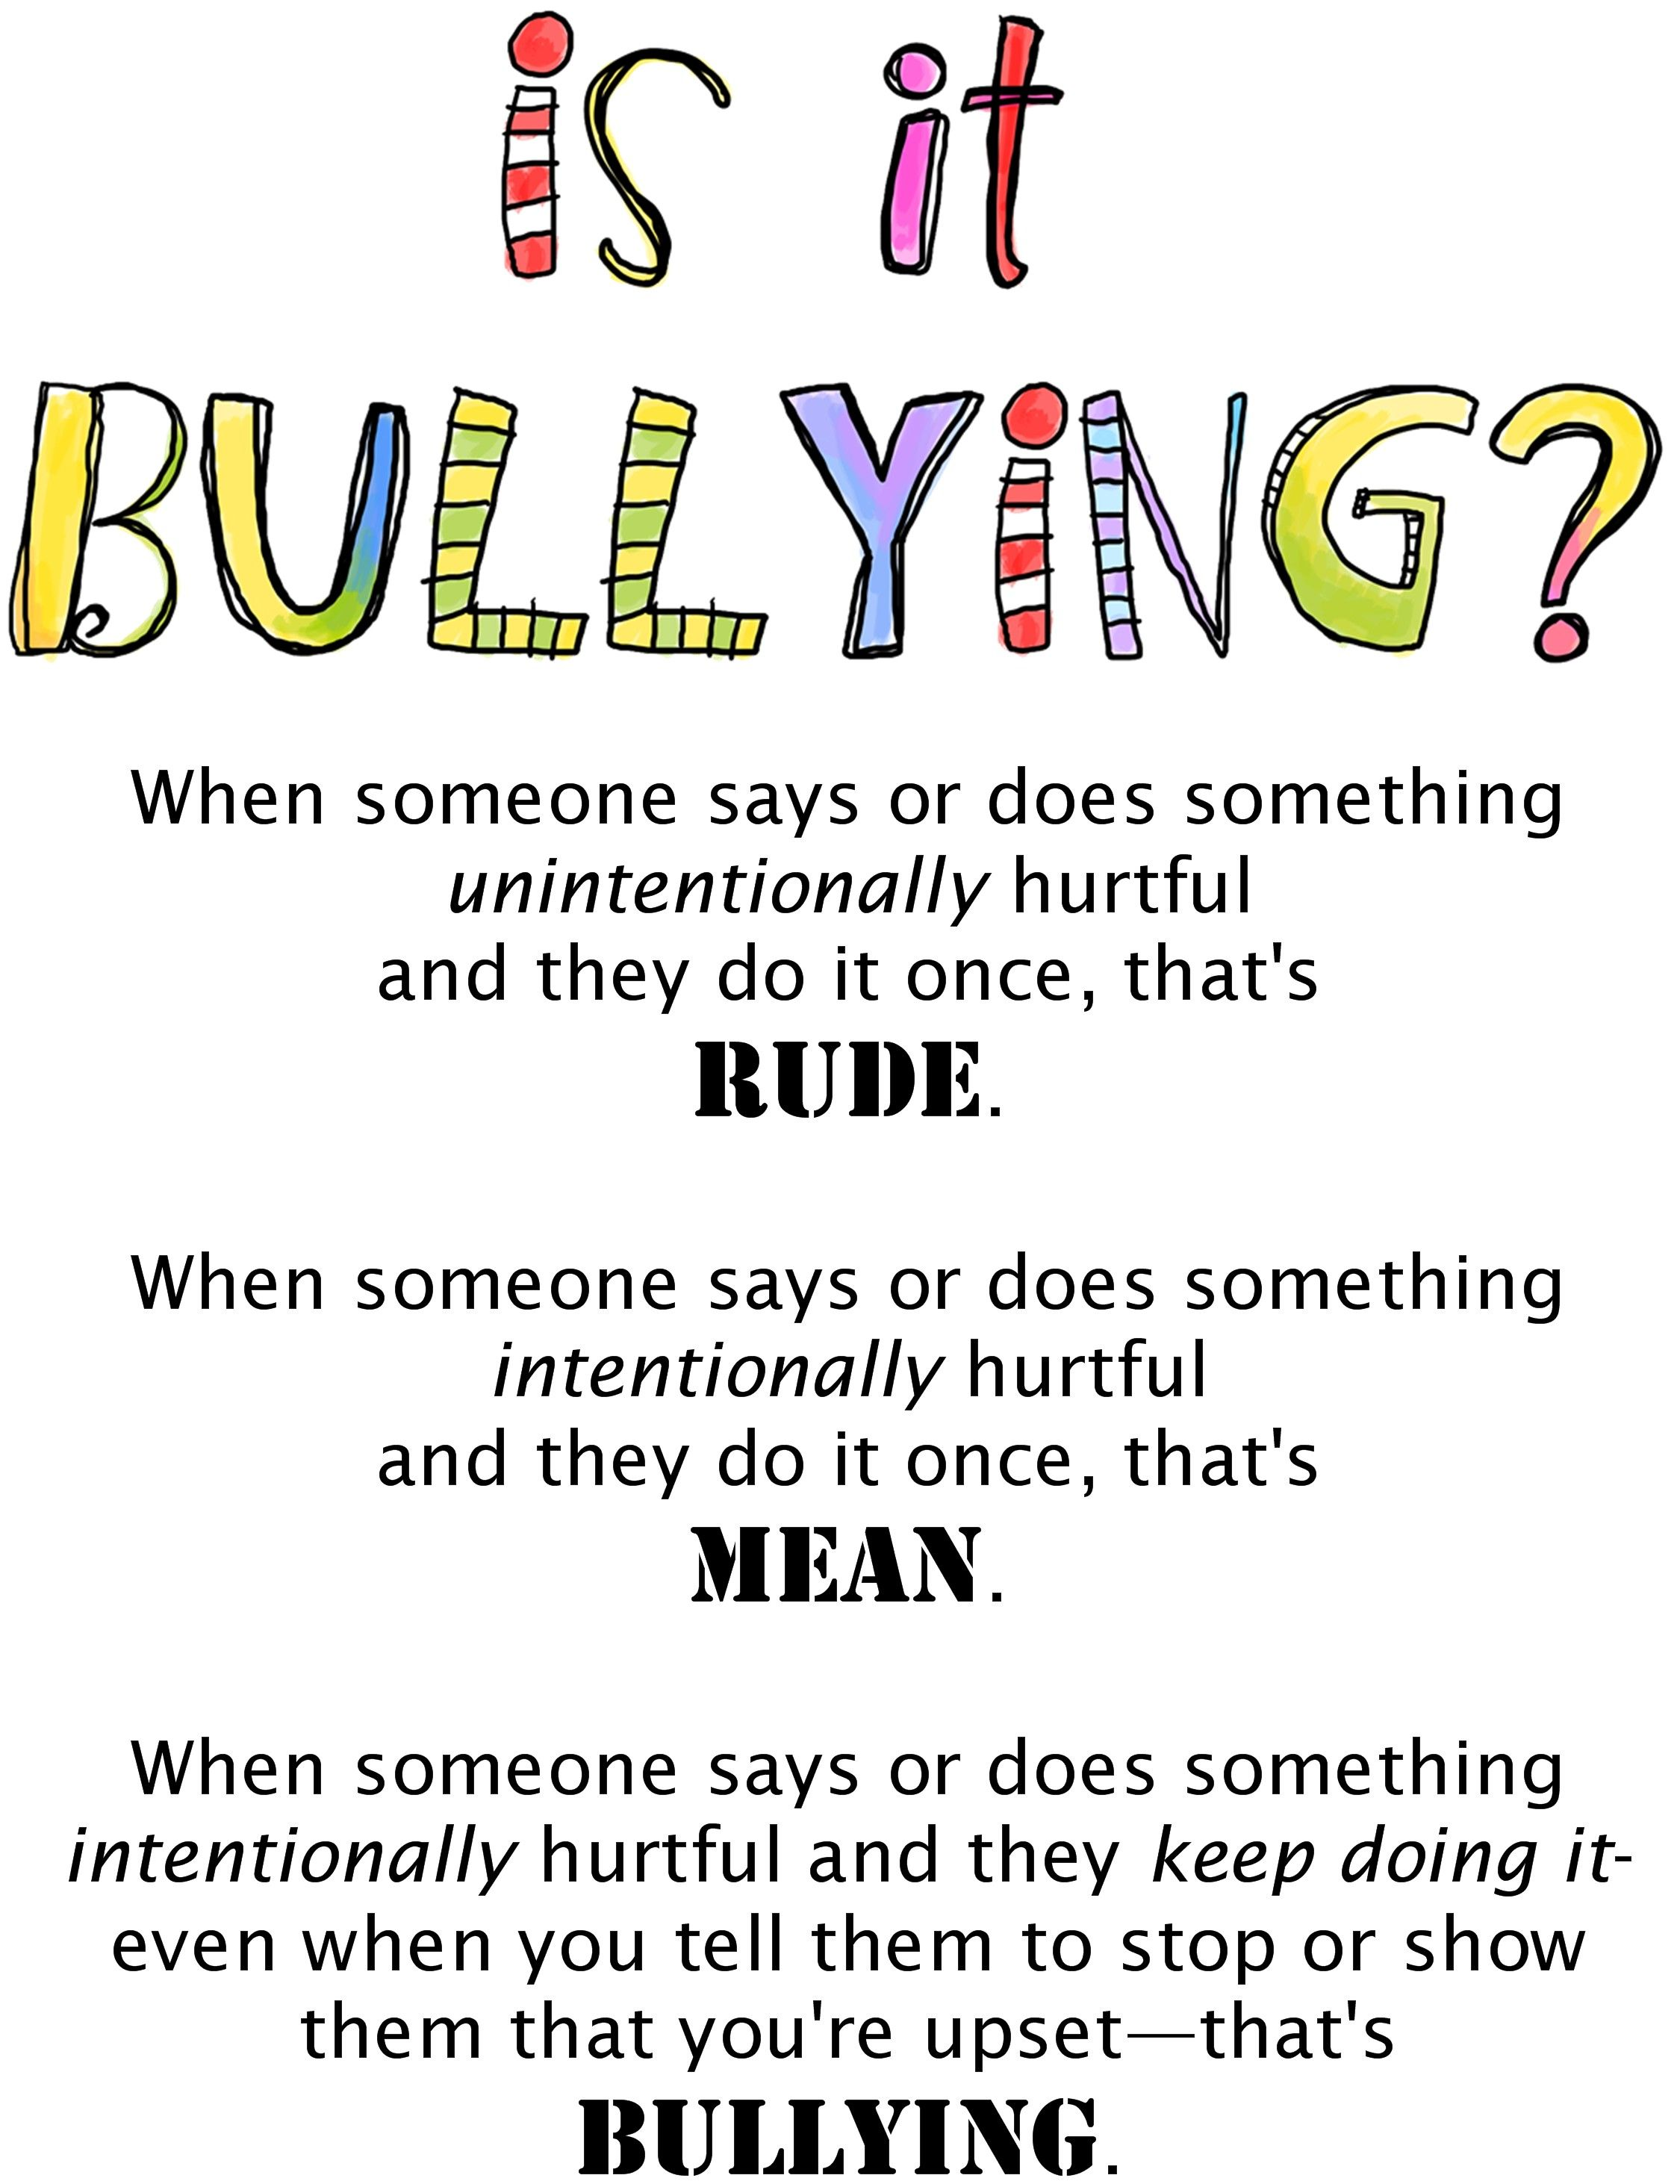 Rude mean bullying from trudy ludwigs website teaching rude mean bullying from trudy ludwigs website fandeluxe Images